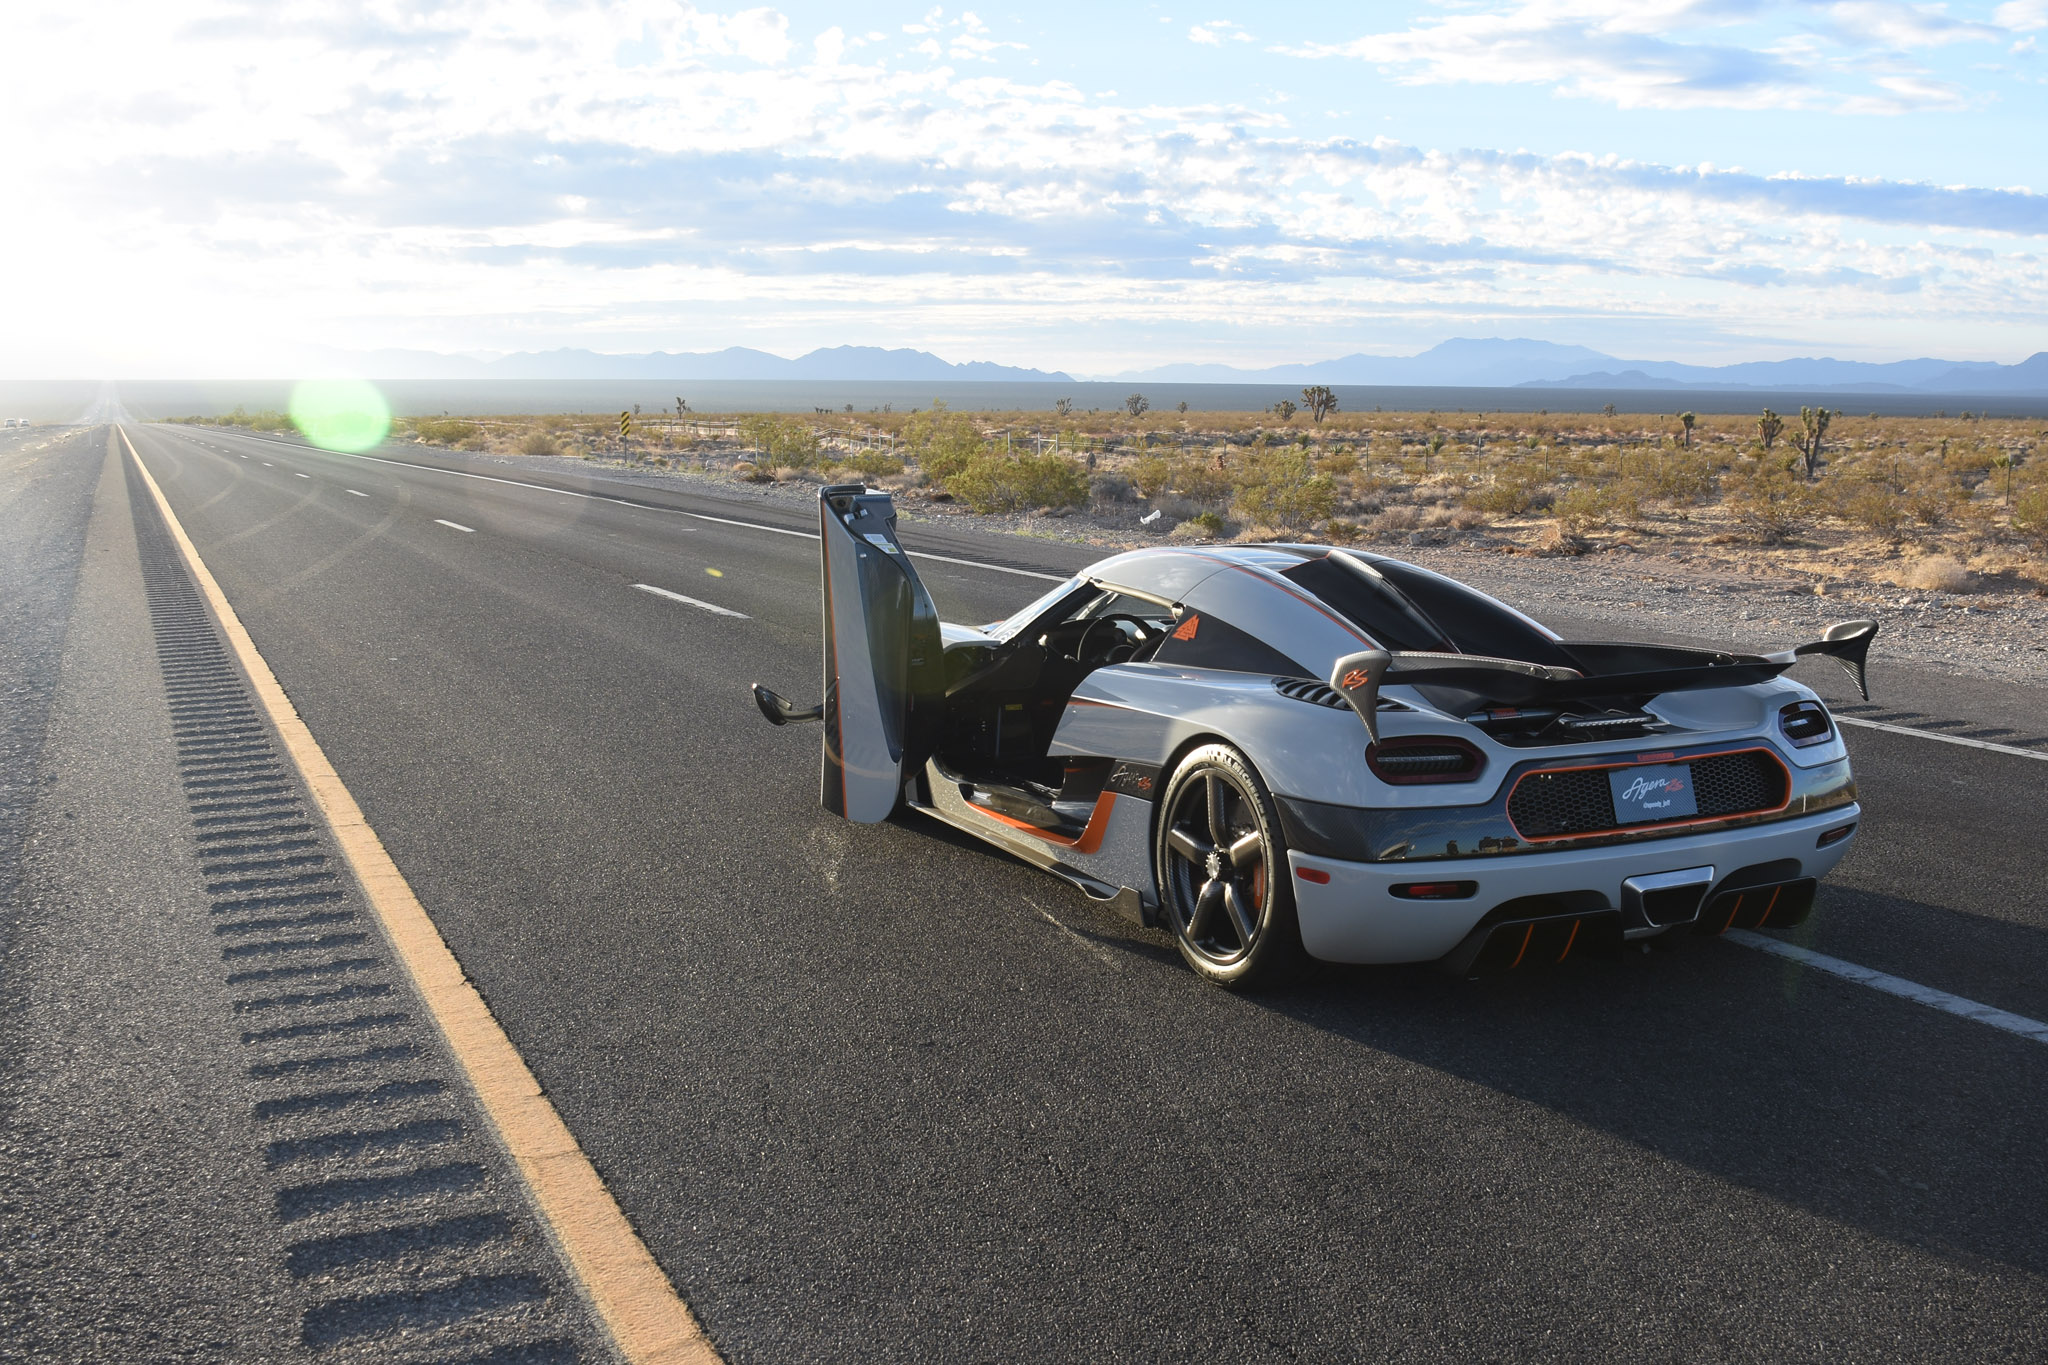 Koenigsegg One Interior >> Our Exclusive Ride in an Koenigsegg Agera RS on a Closed Nevada Road | Automobile Magazine